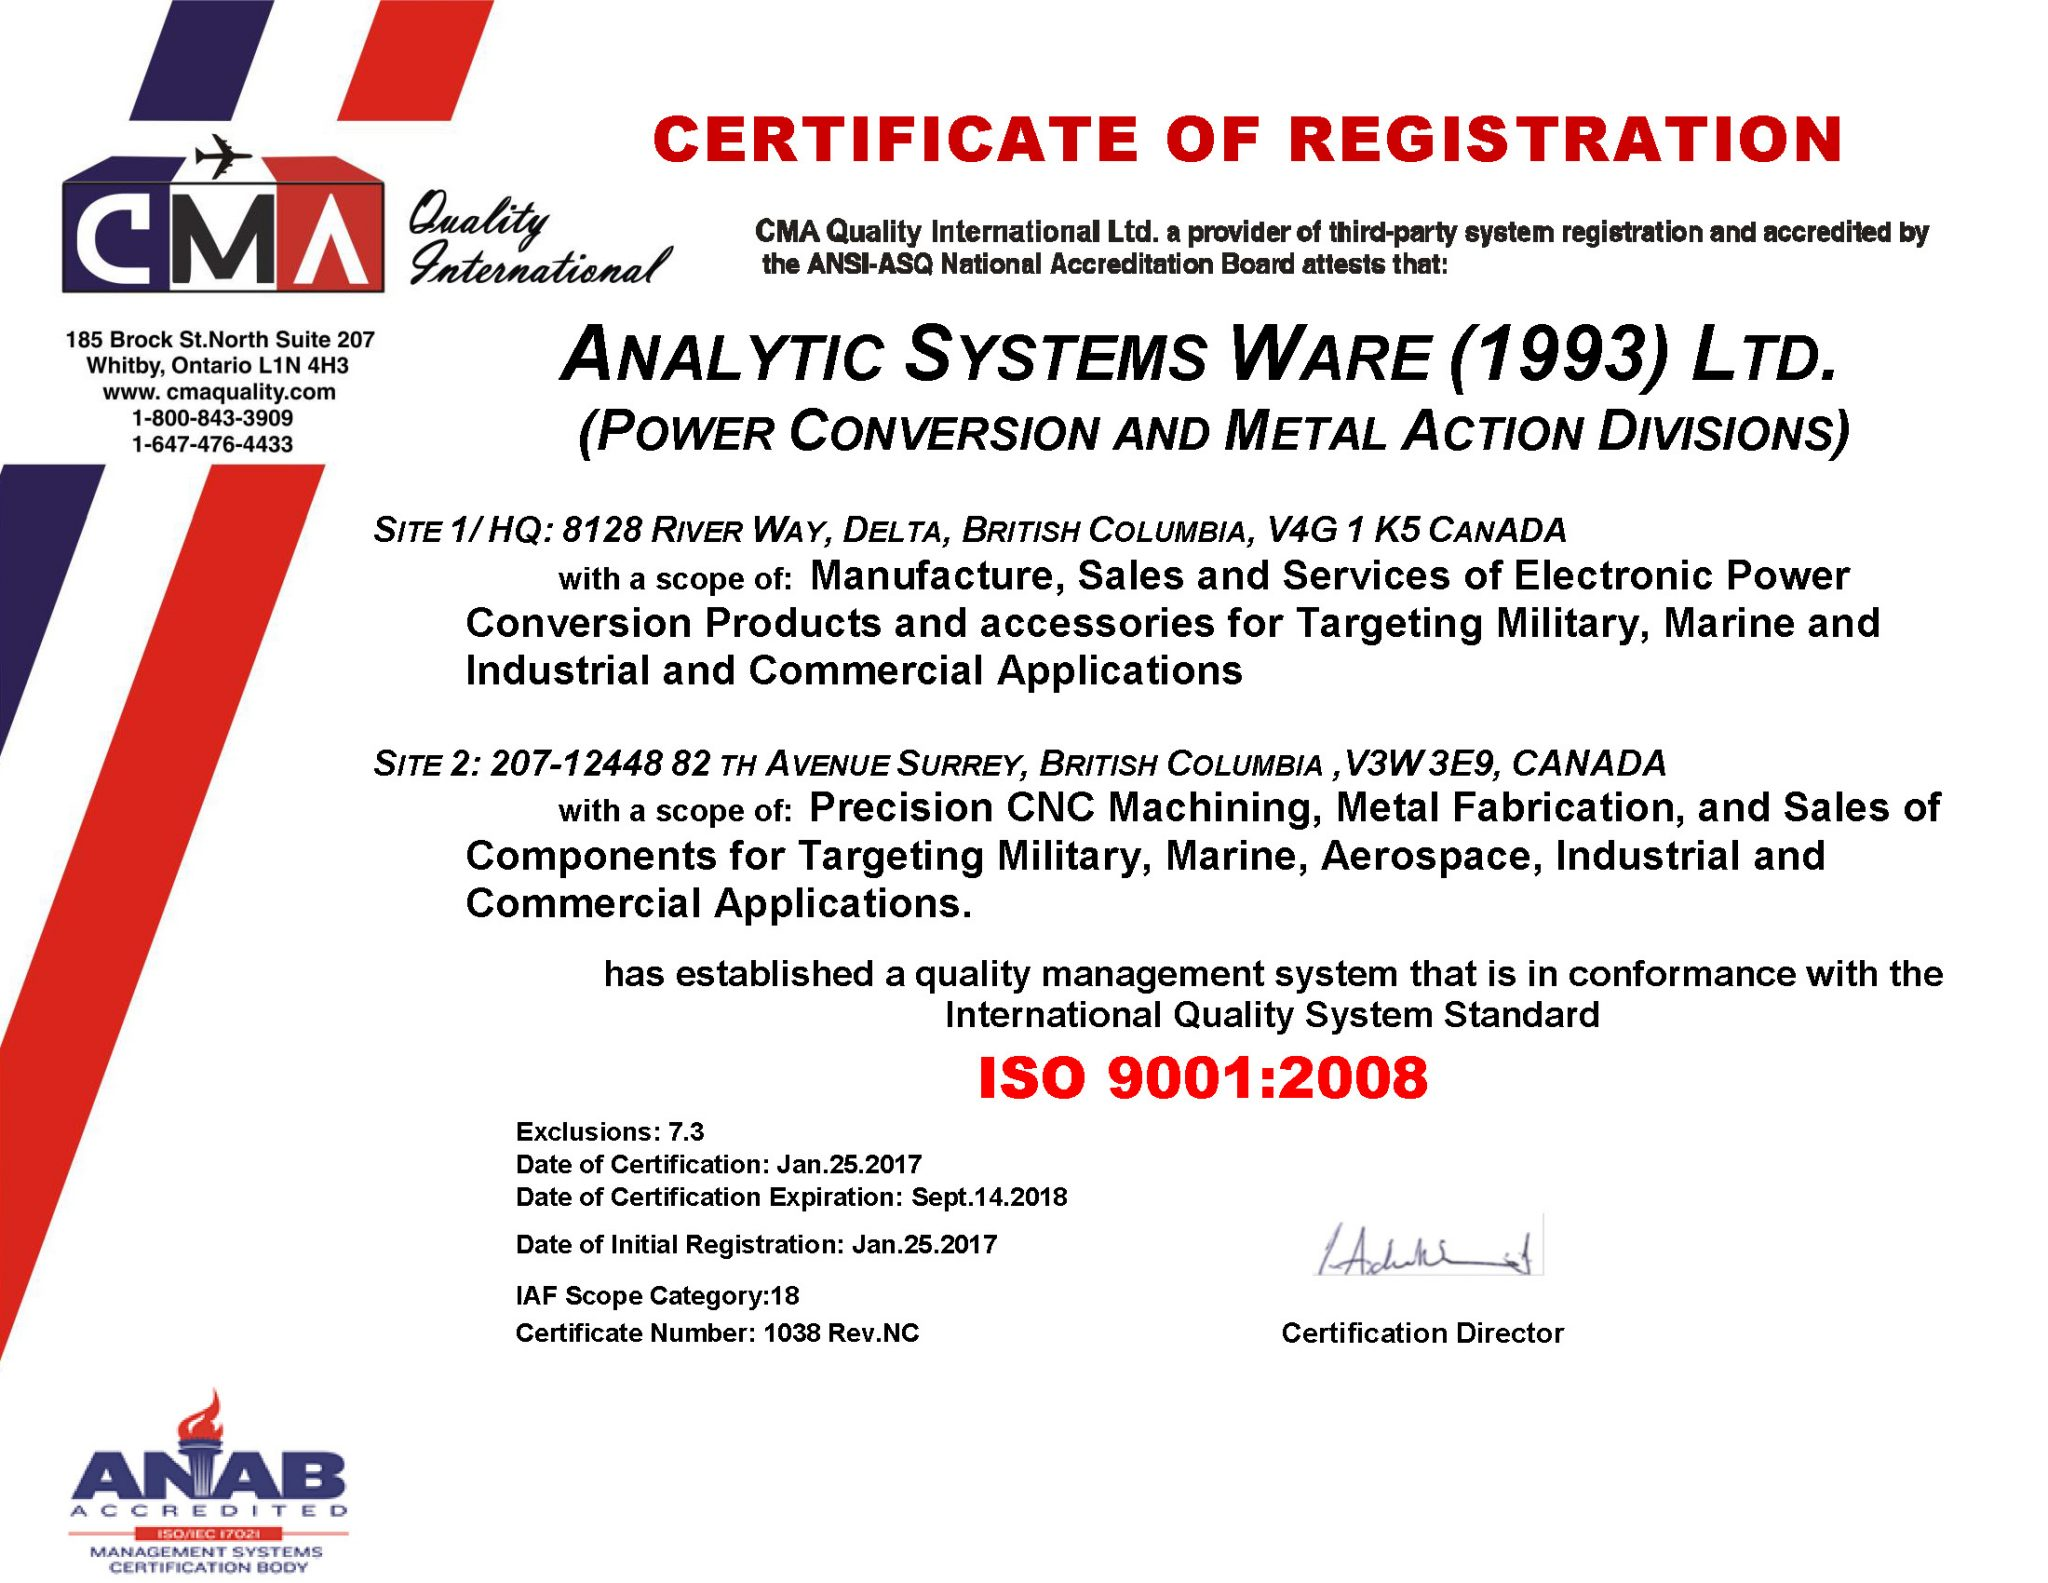 Analytic Systems Certified to ISO 9001-2008